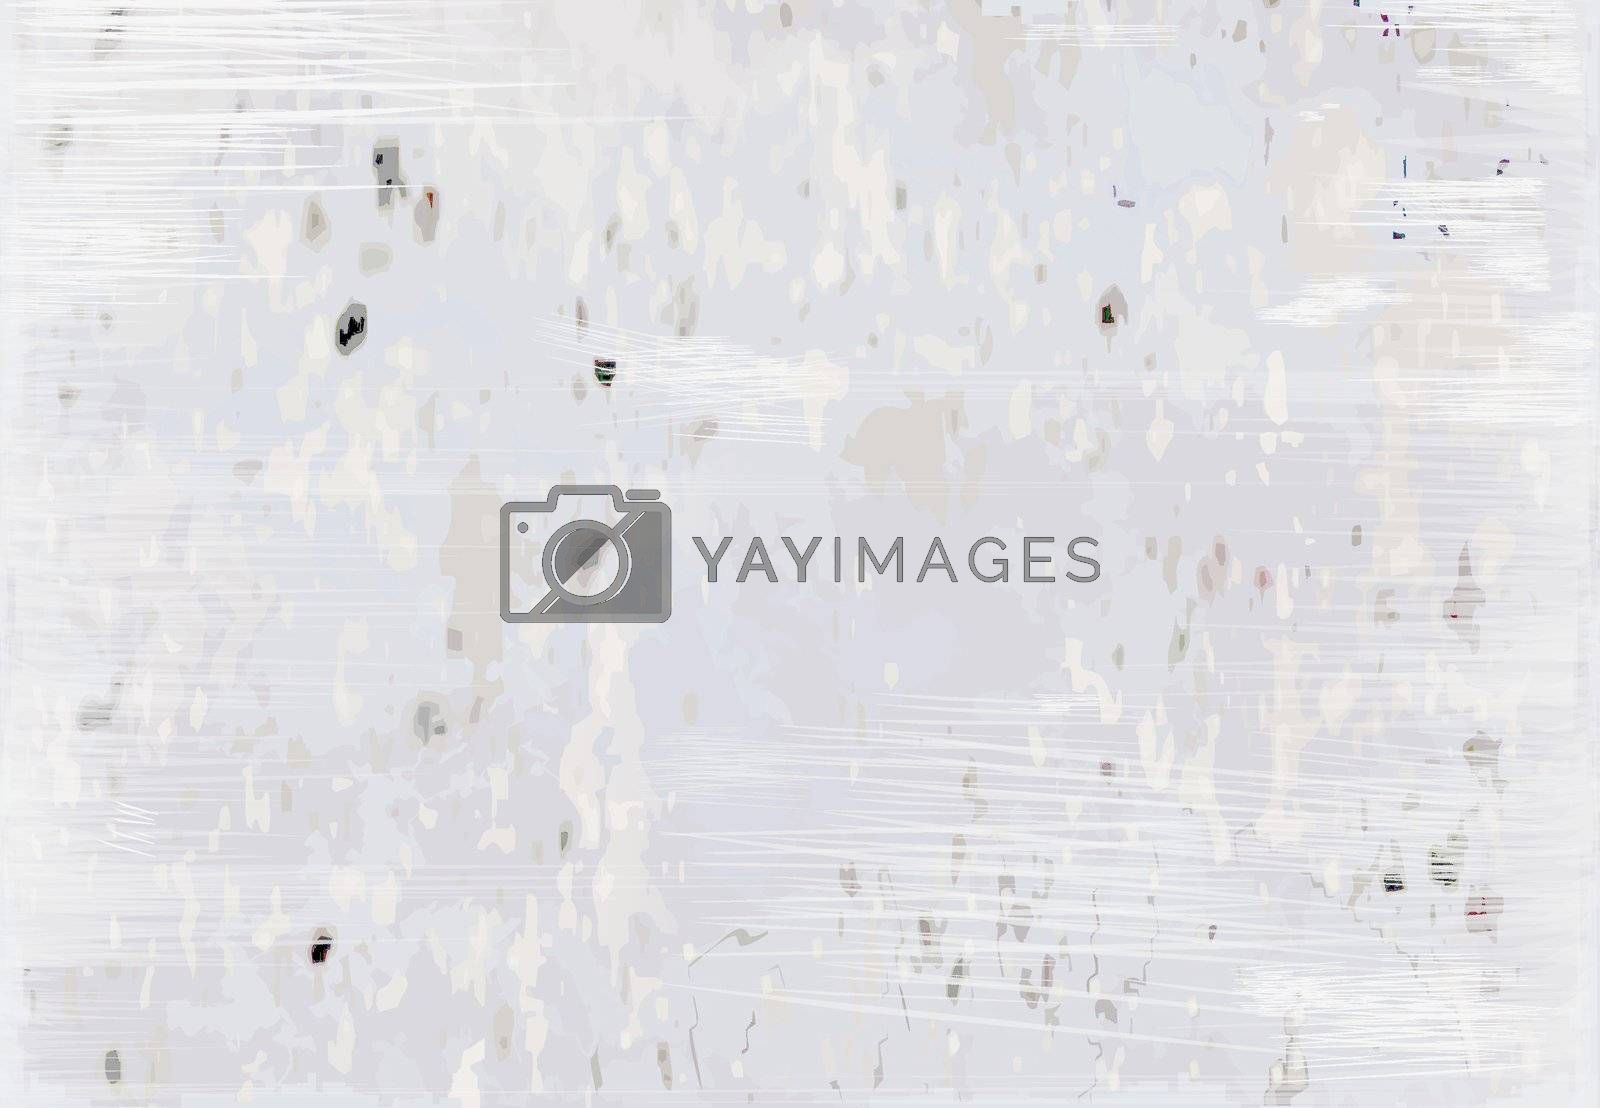 abstract gray grunge background, illustration